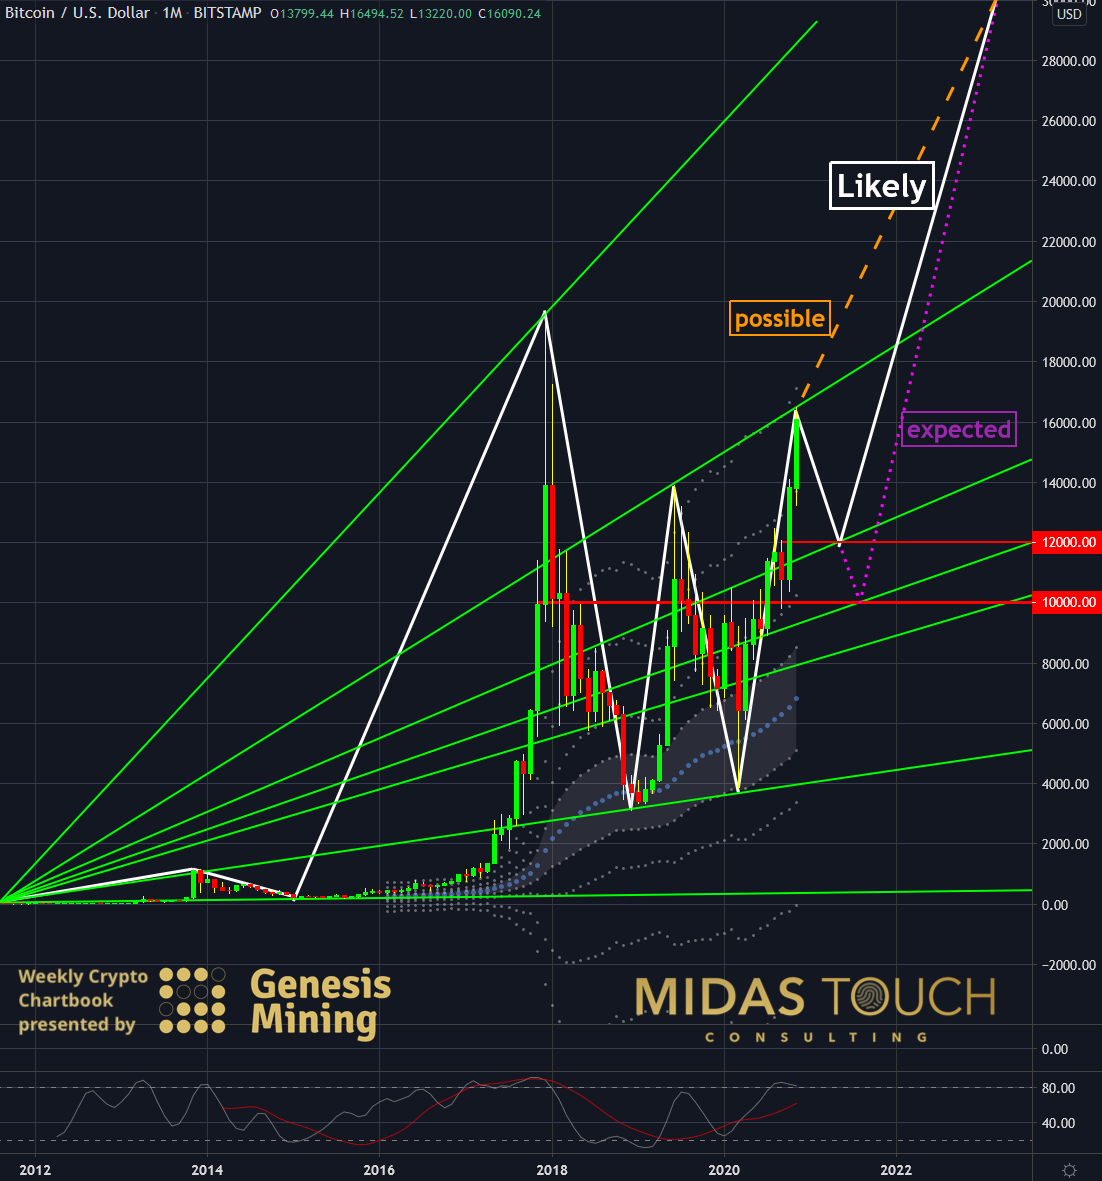 BTC-USDT, monthly chart as of November 16th, 2020